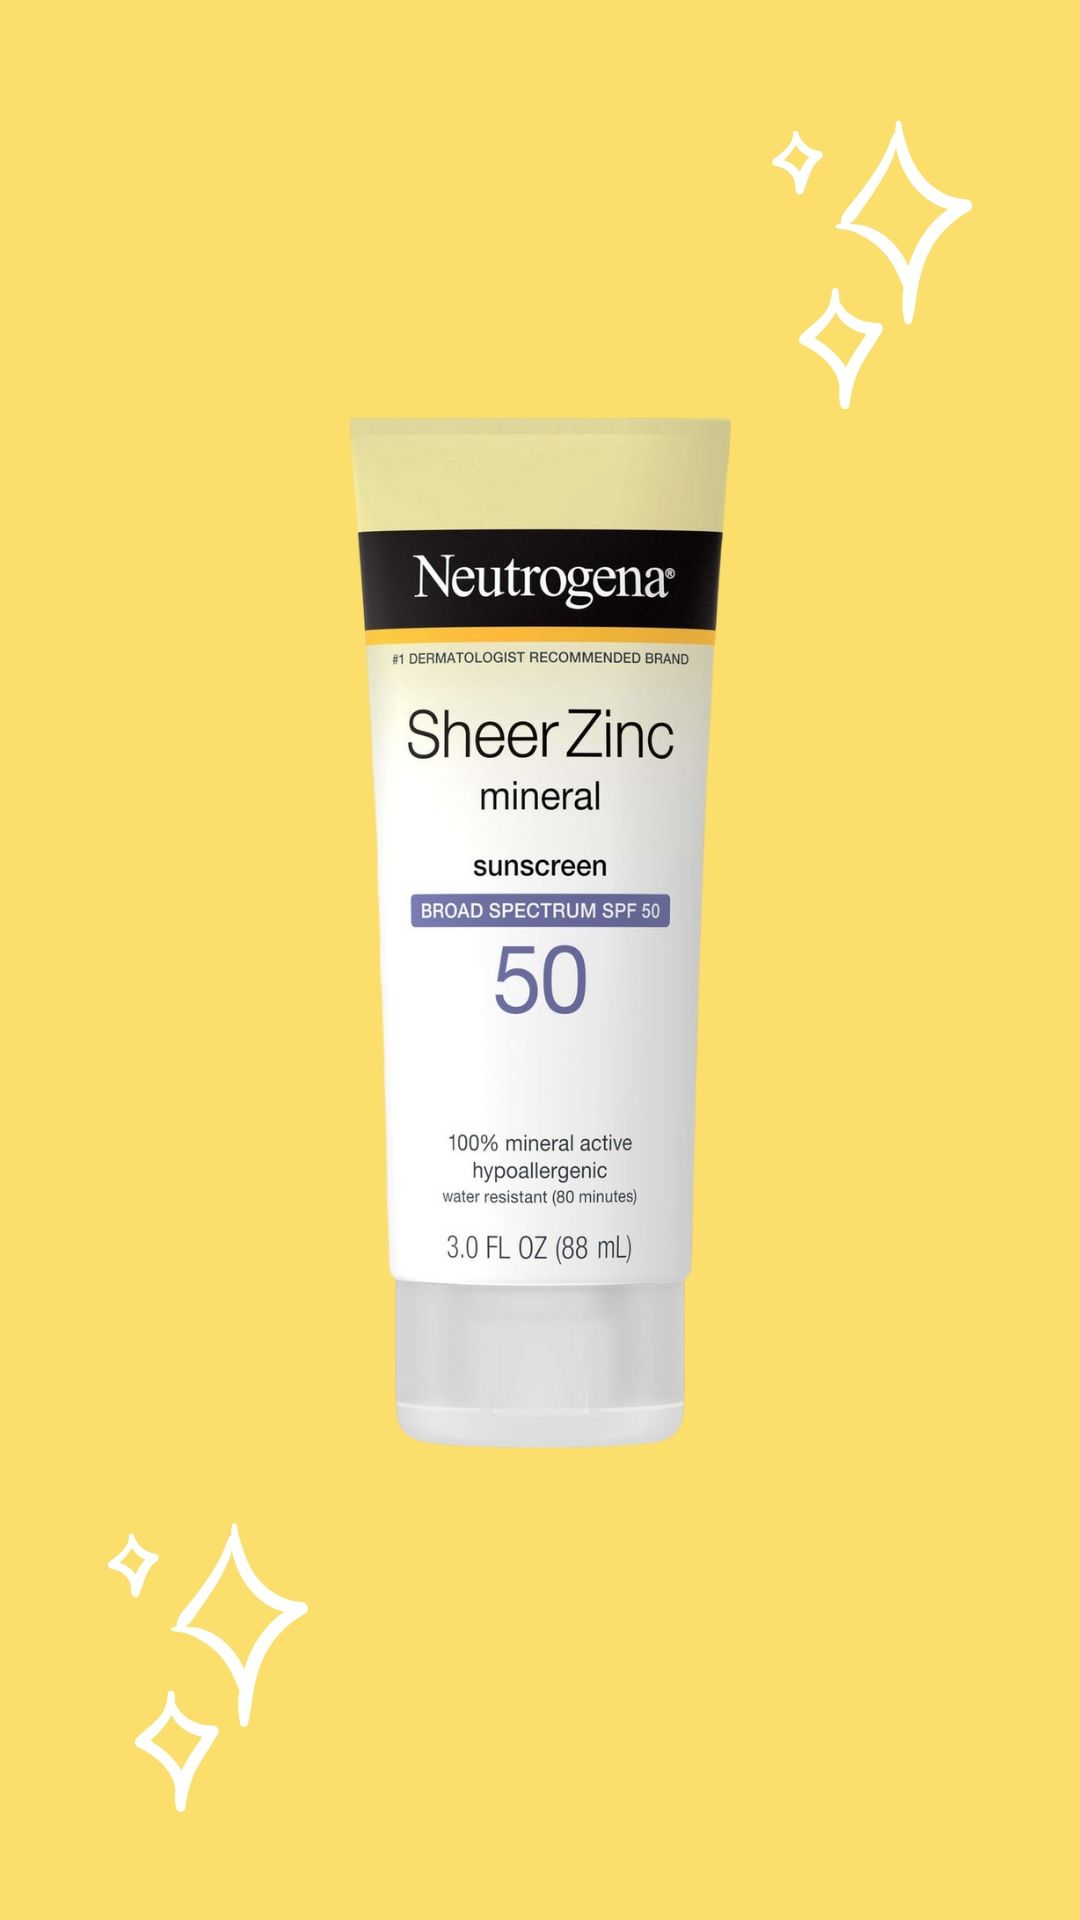 Neutrogena Sheer Zinc Mineral Sunscreen, yellow background with sparkles